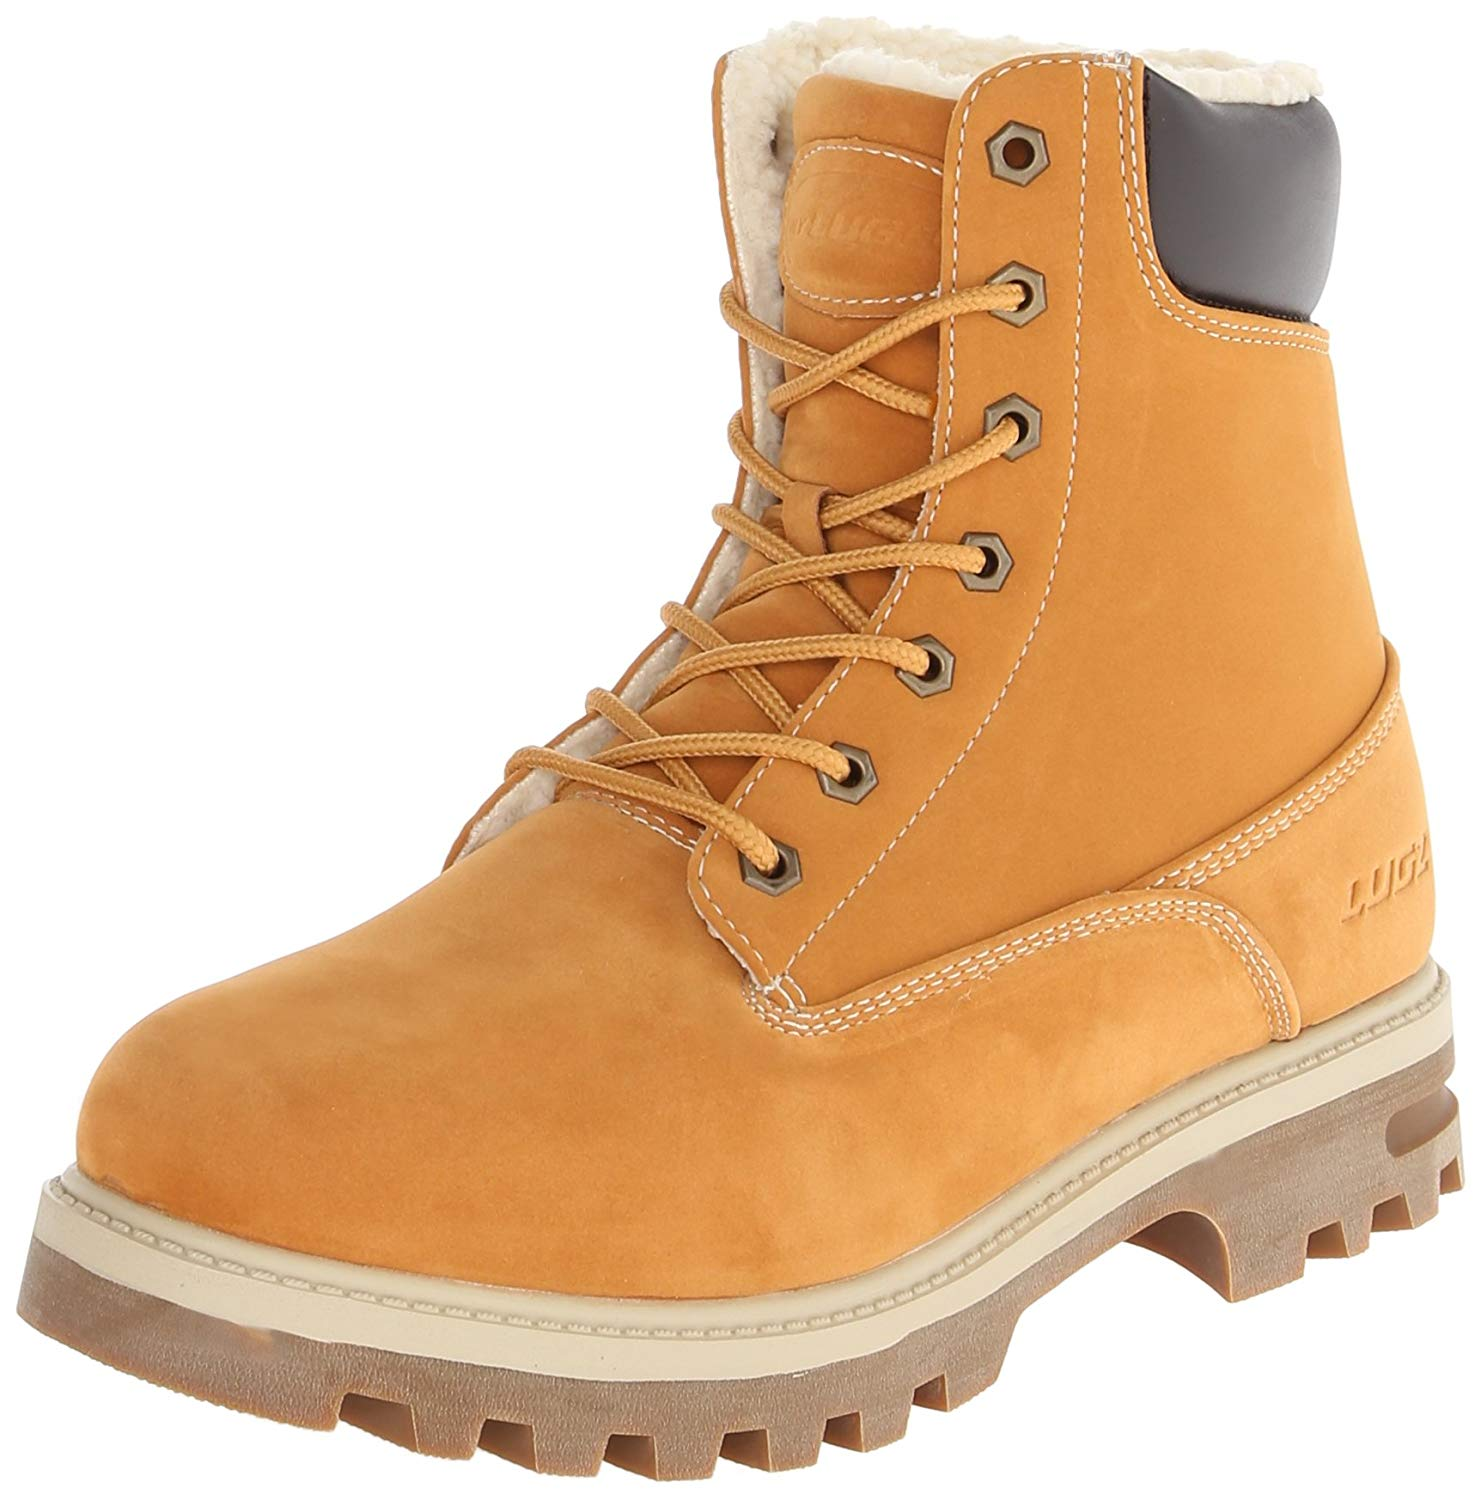 Lugz boots amazon.com | lugz menu0027s empire hi fleece wr thermabuck boot | industrial u0026  construction XMFKVBD